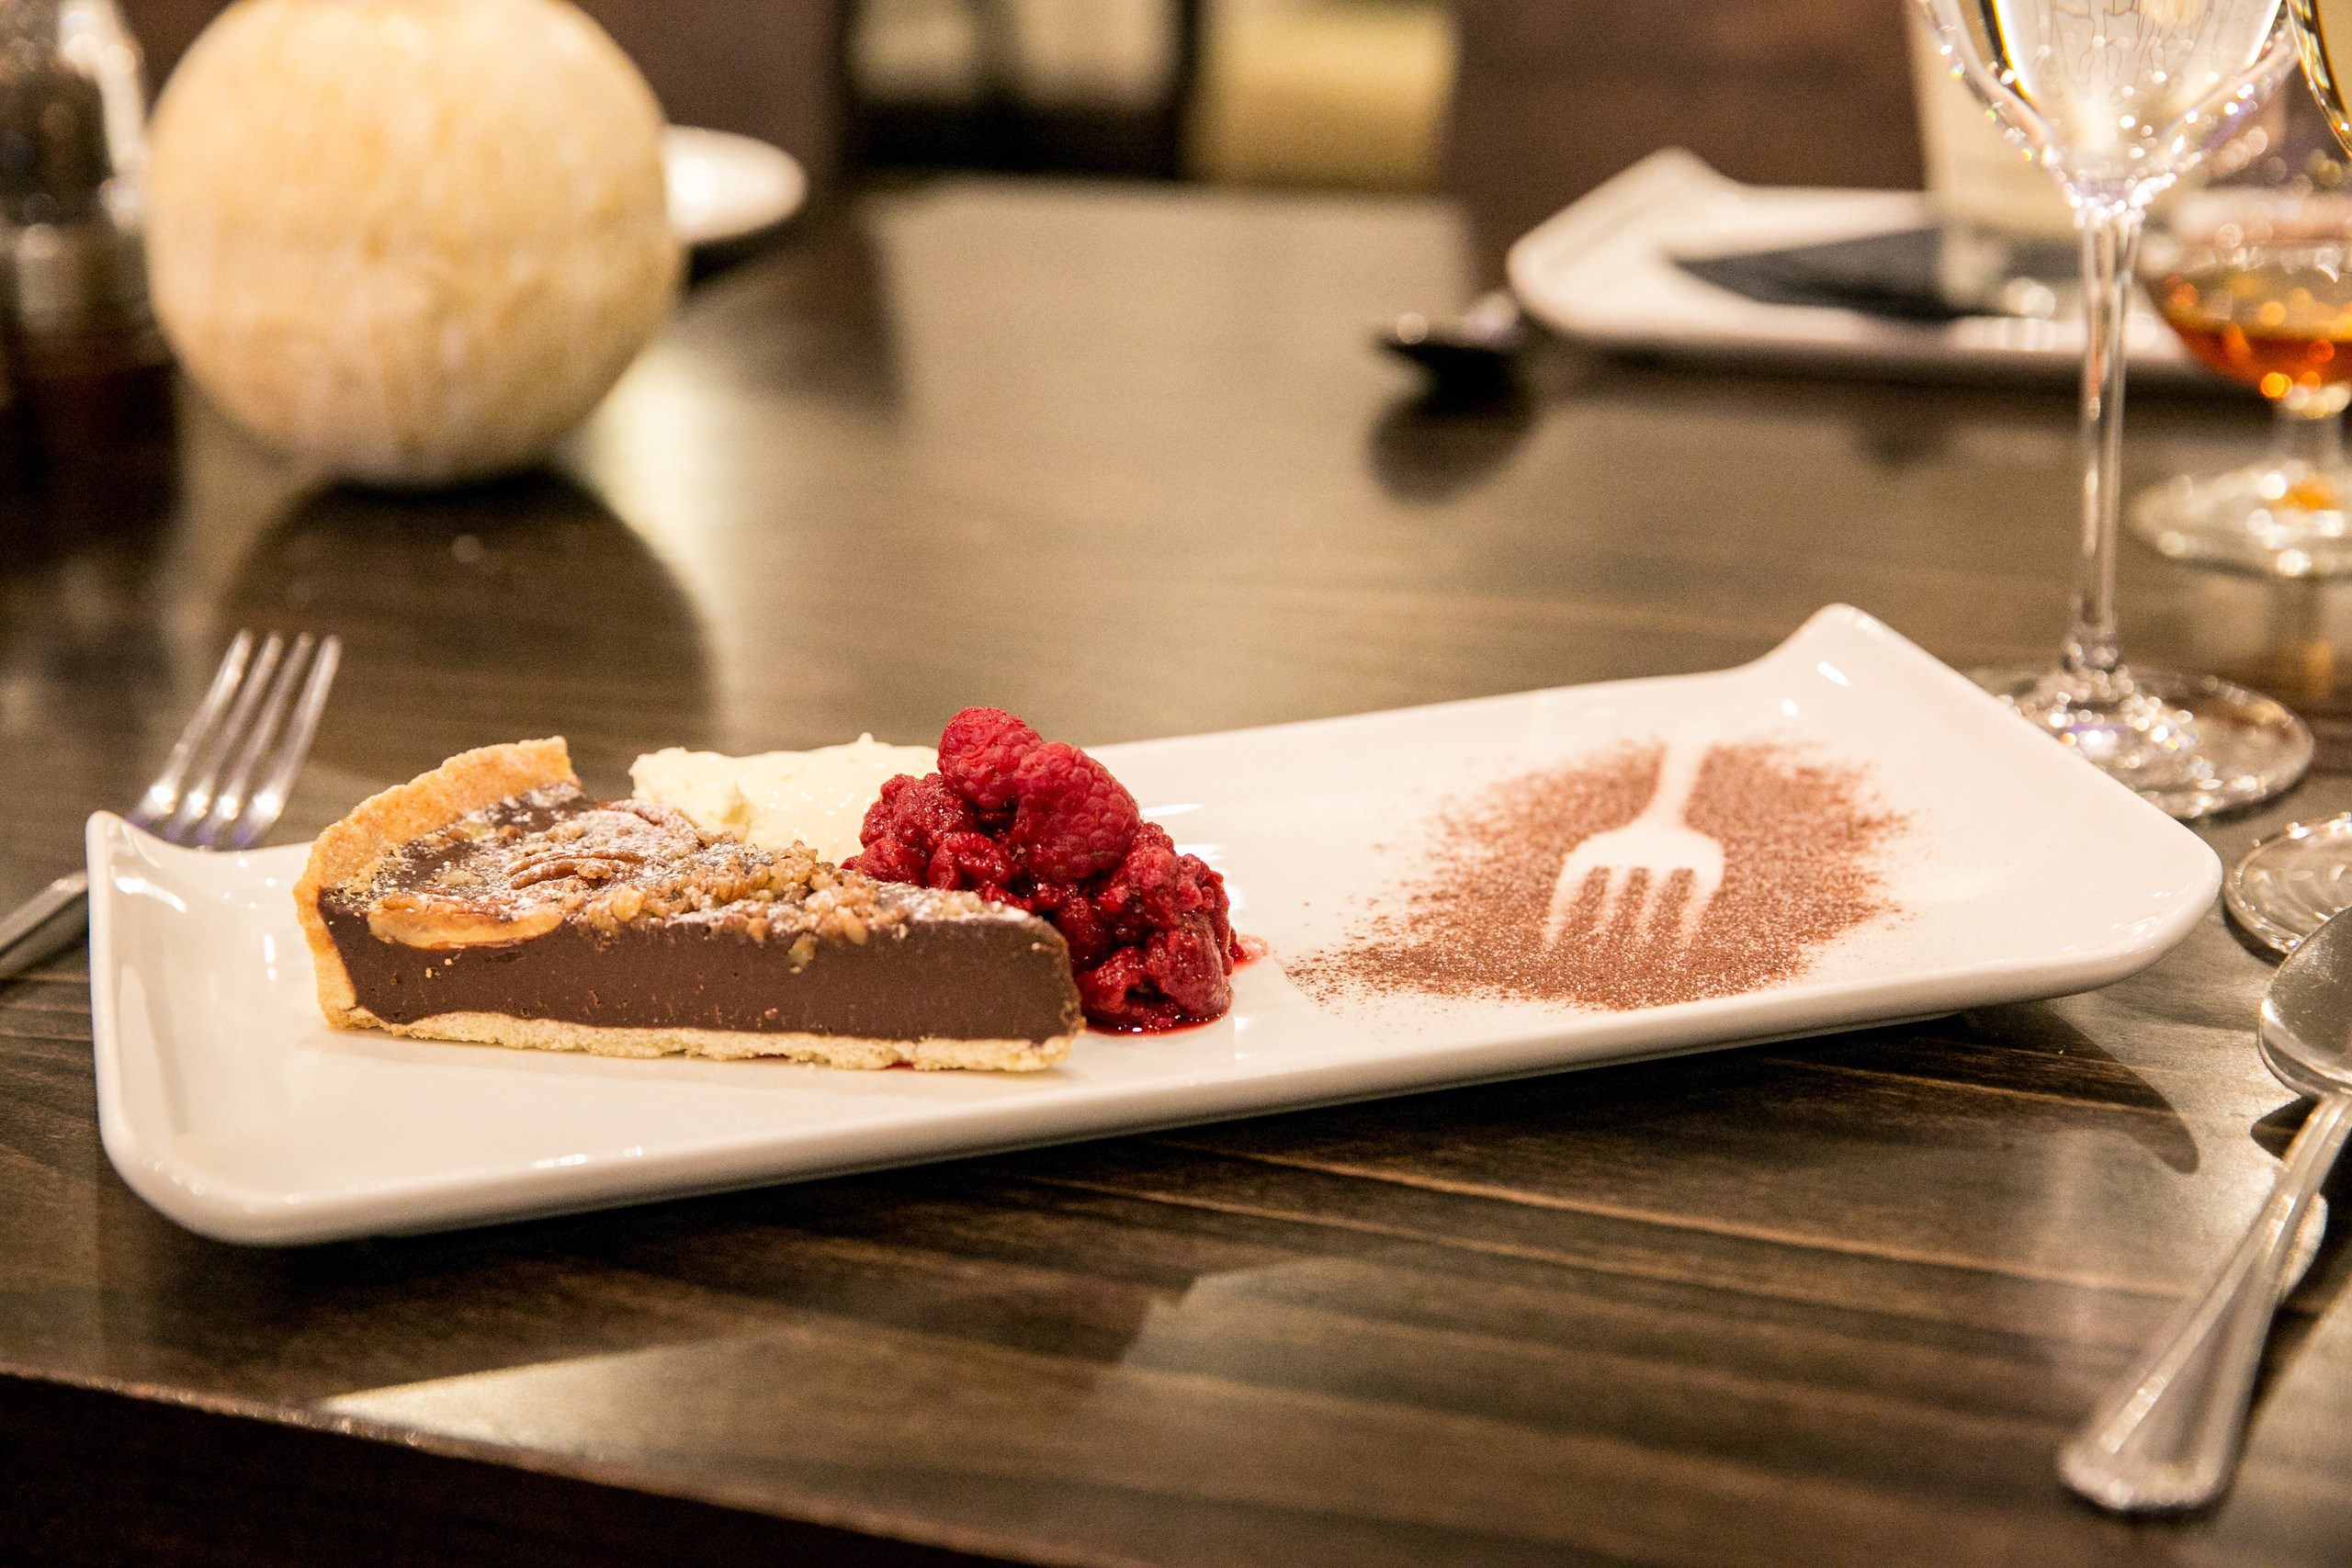 Pecan Pie with Raspberries - The Foodworks Restaurant menu